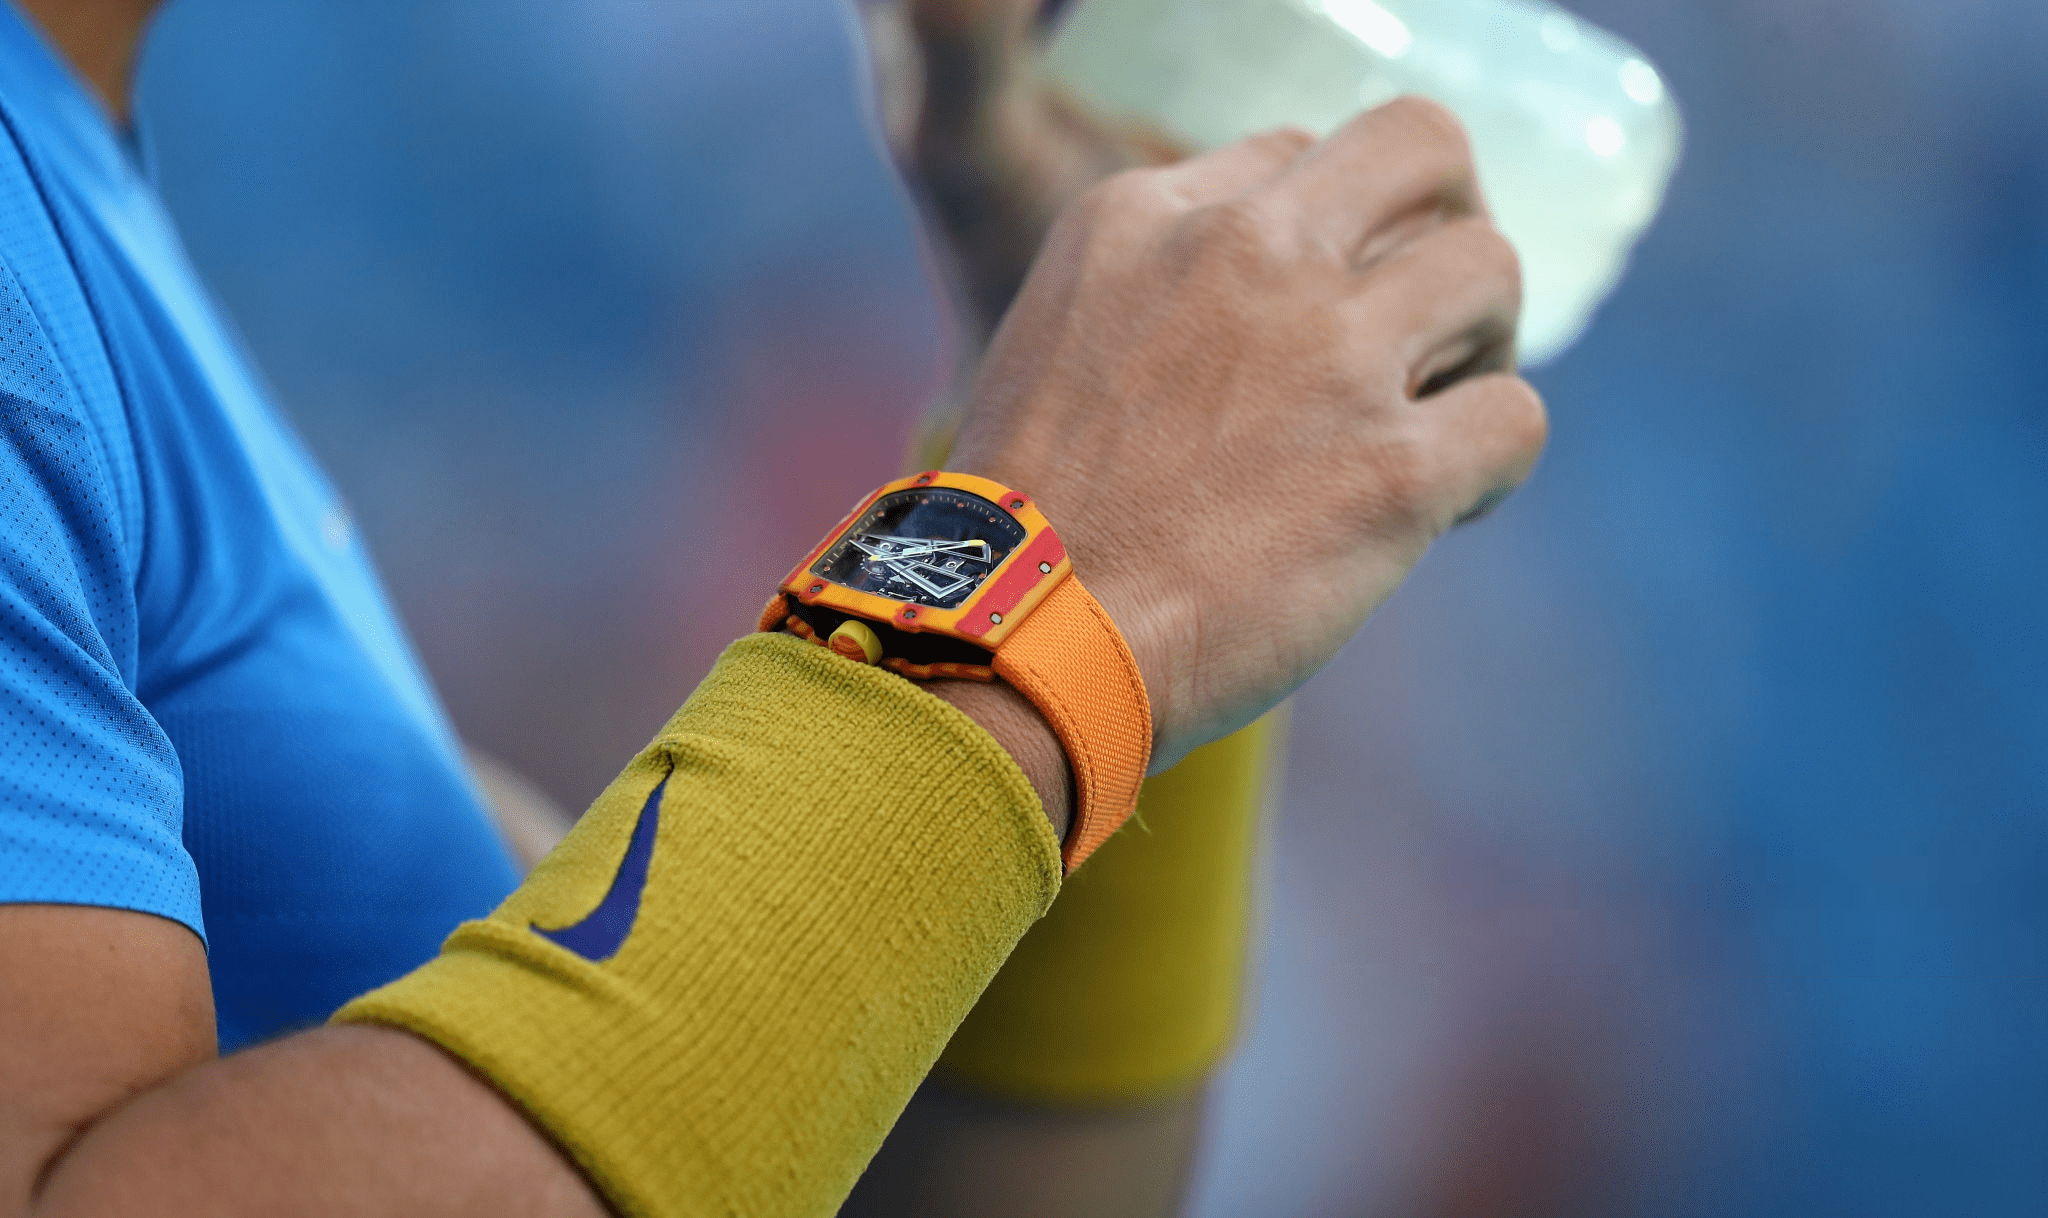 playing sport with your watch on is a daft idea